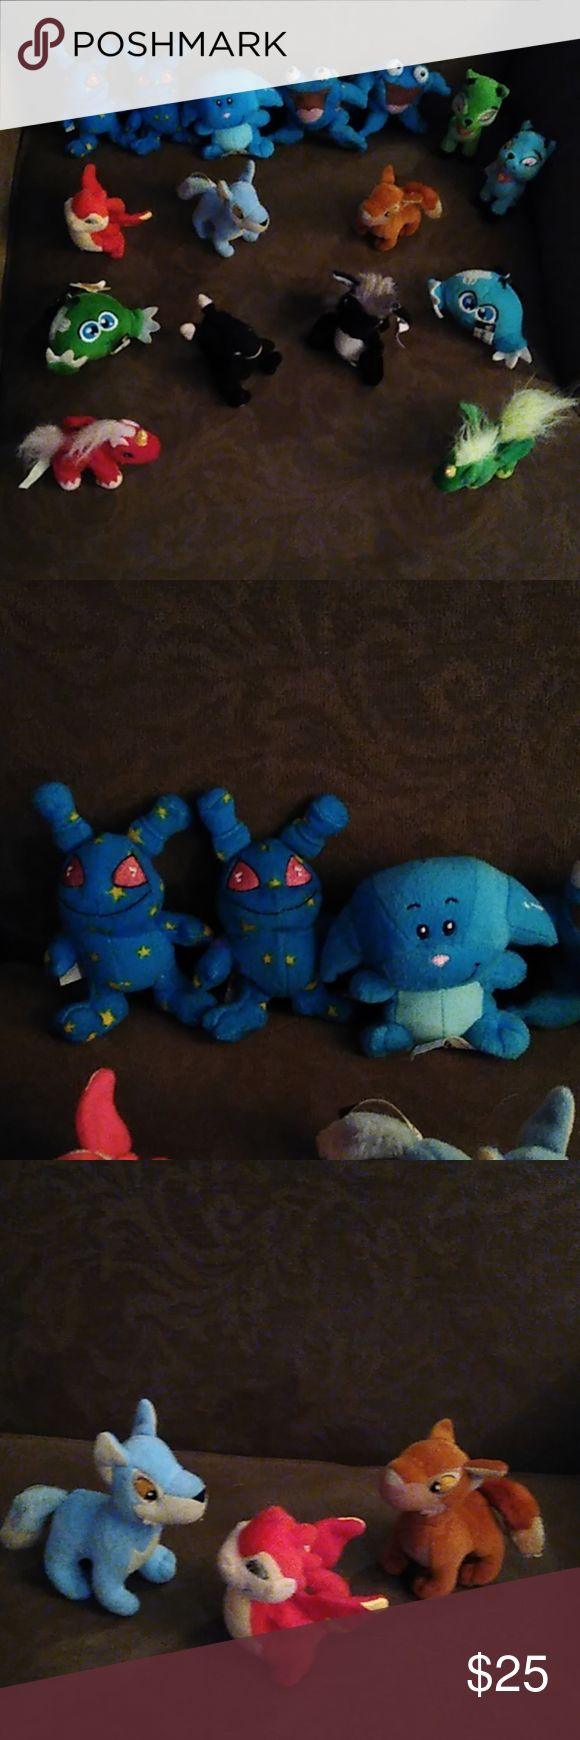 Neopets Adorable little Neopets. Preowned. Lot of 16 from